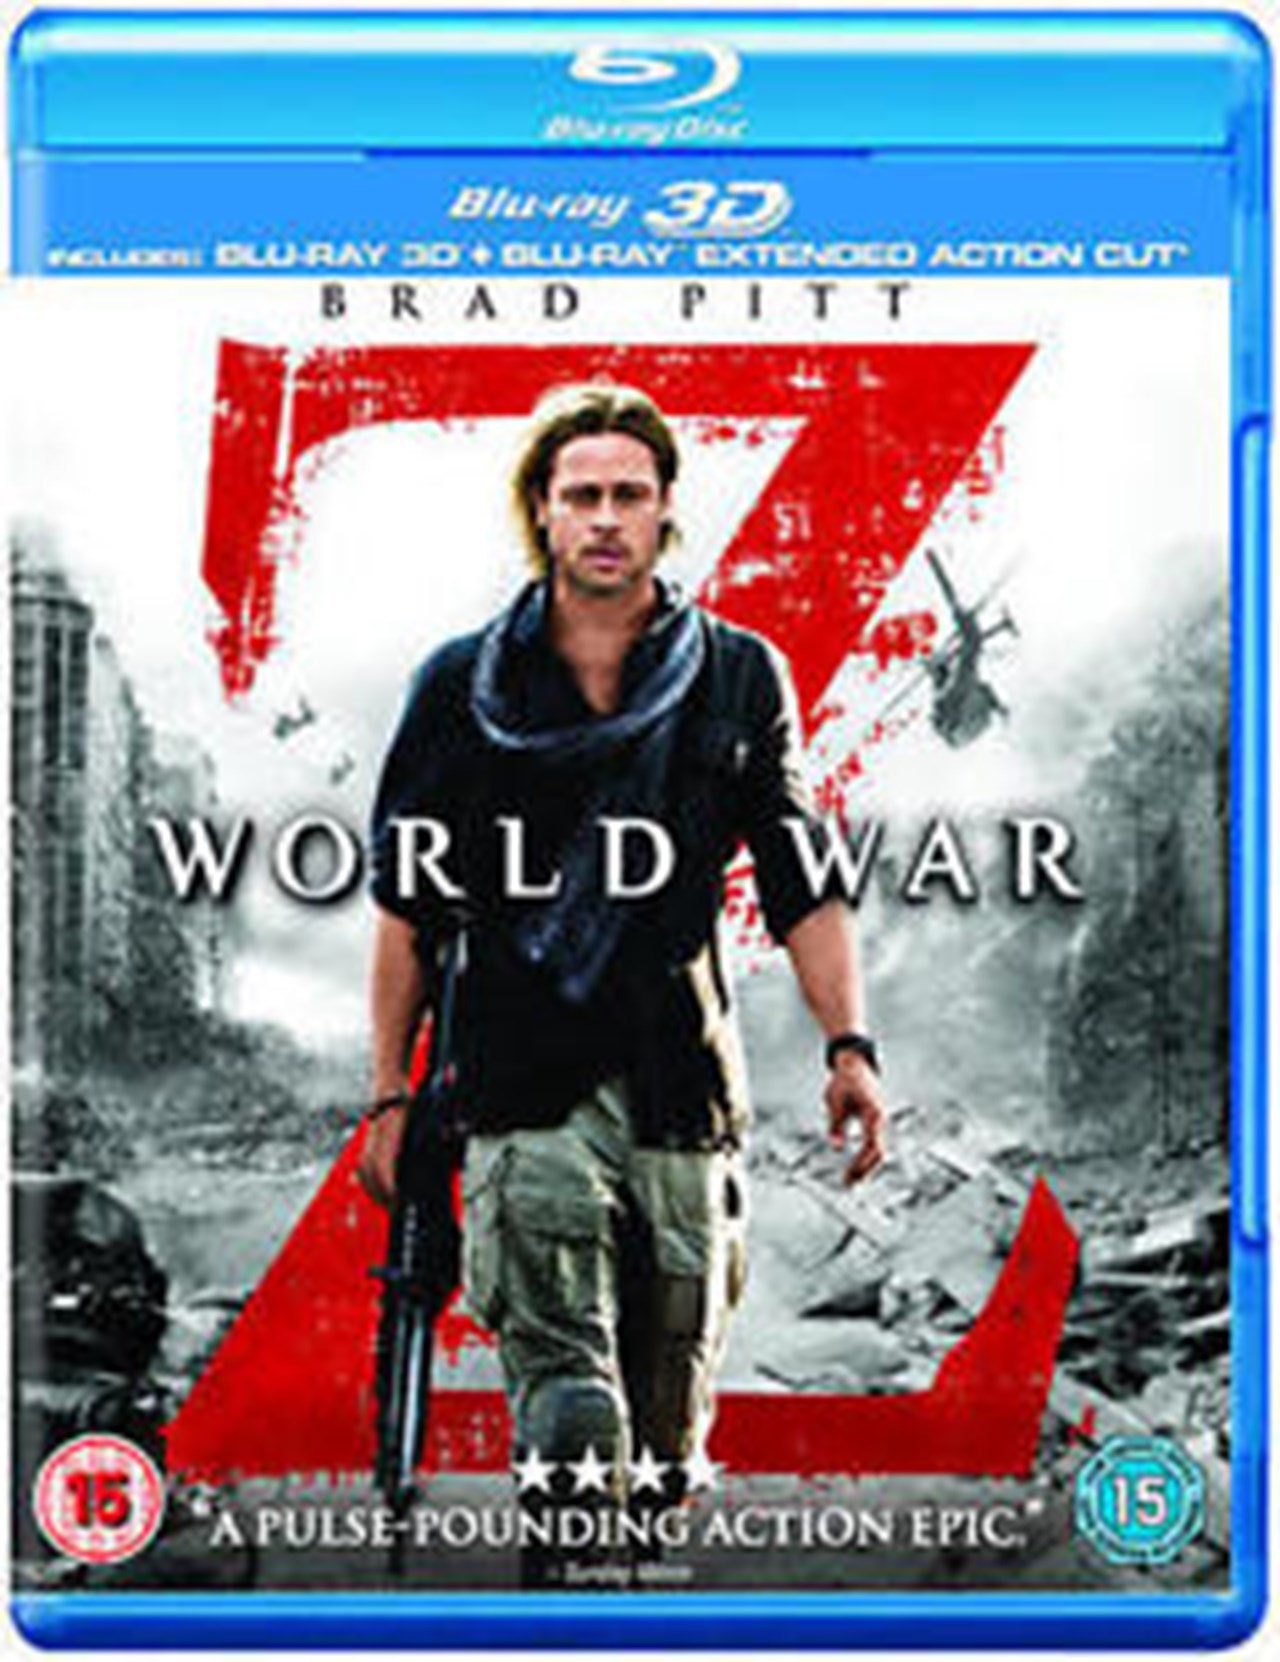 World War Z: Extended Action Cut - 1